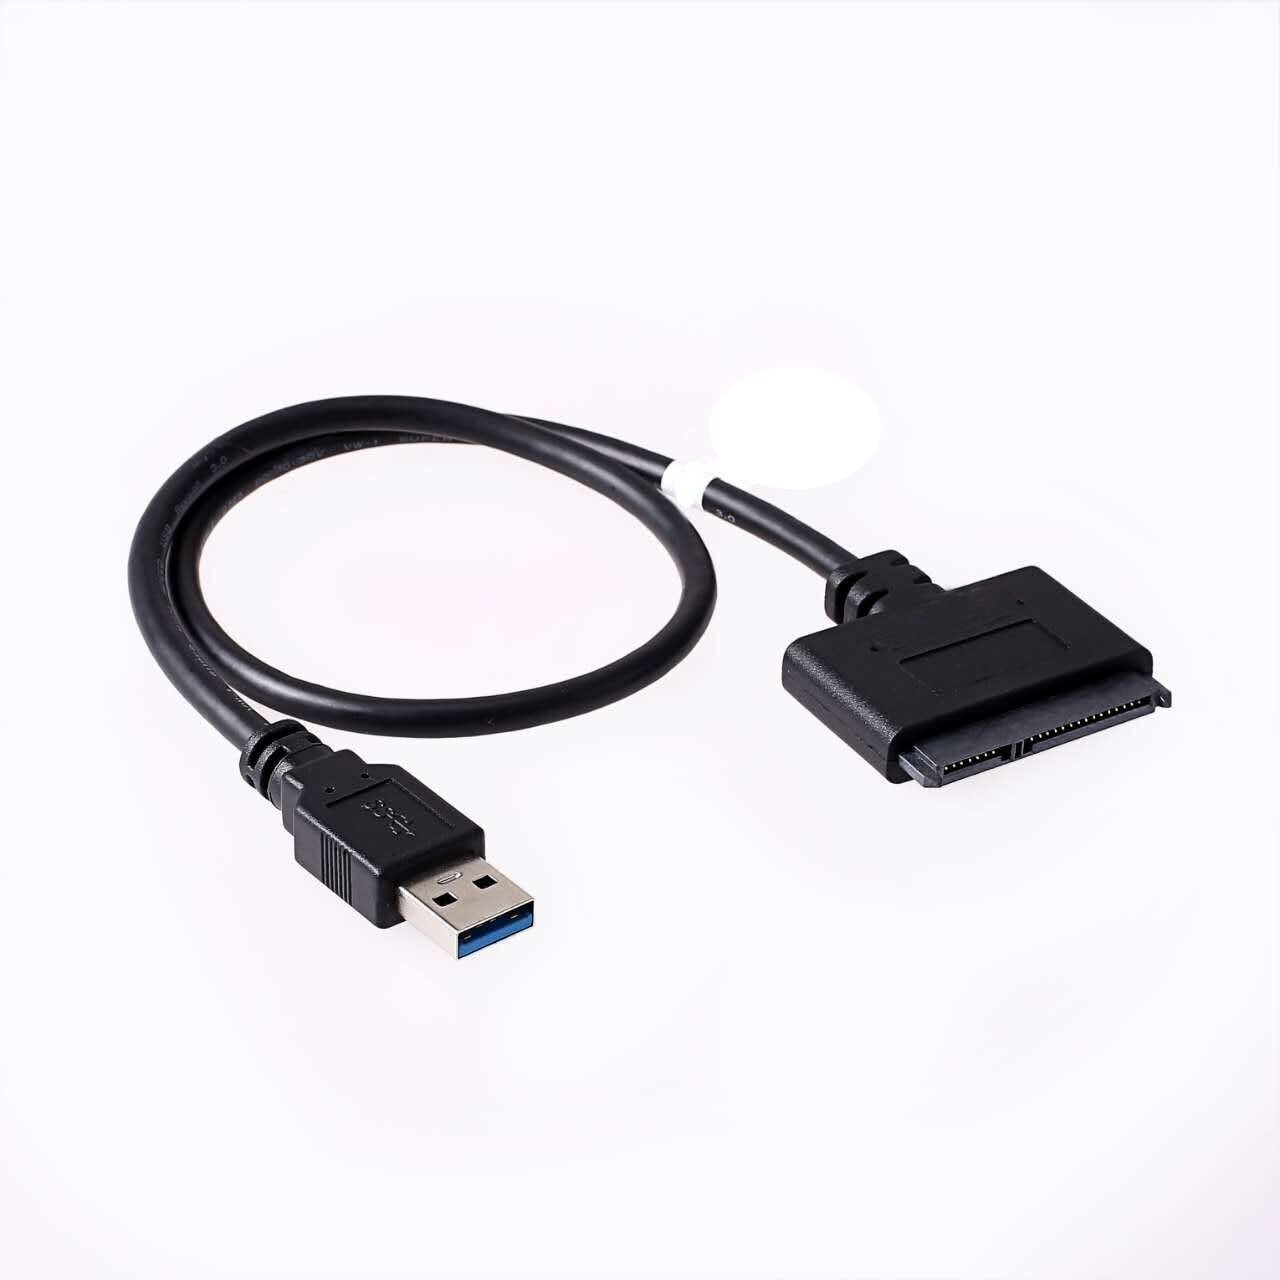 """USB 3.0 to SATA-II Adapter, for 2.5"""" /1.8"""" HDD SSD, up to 5Gbps, 0.5M"""